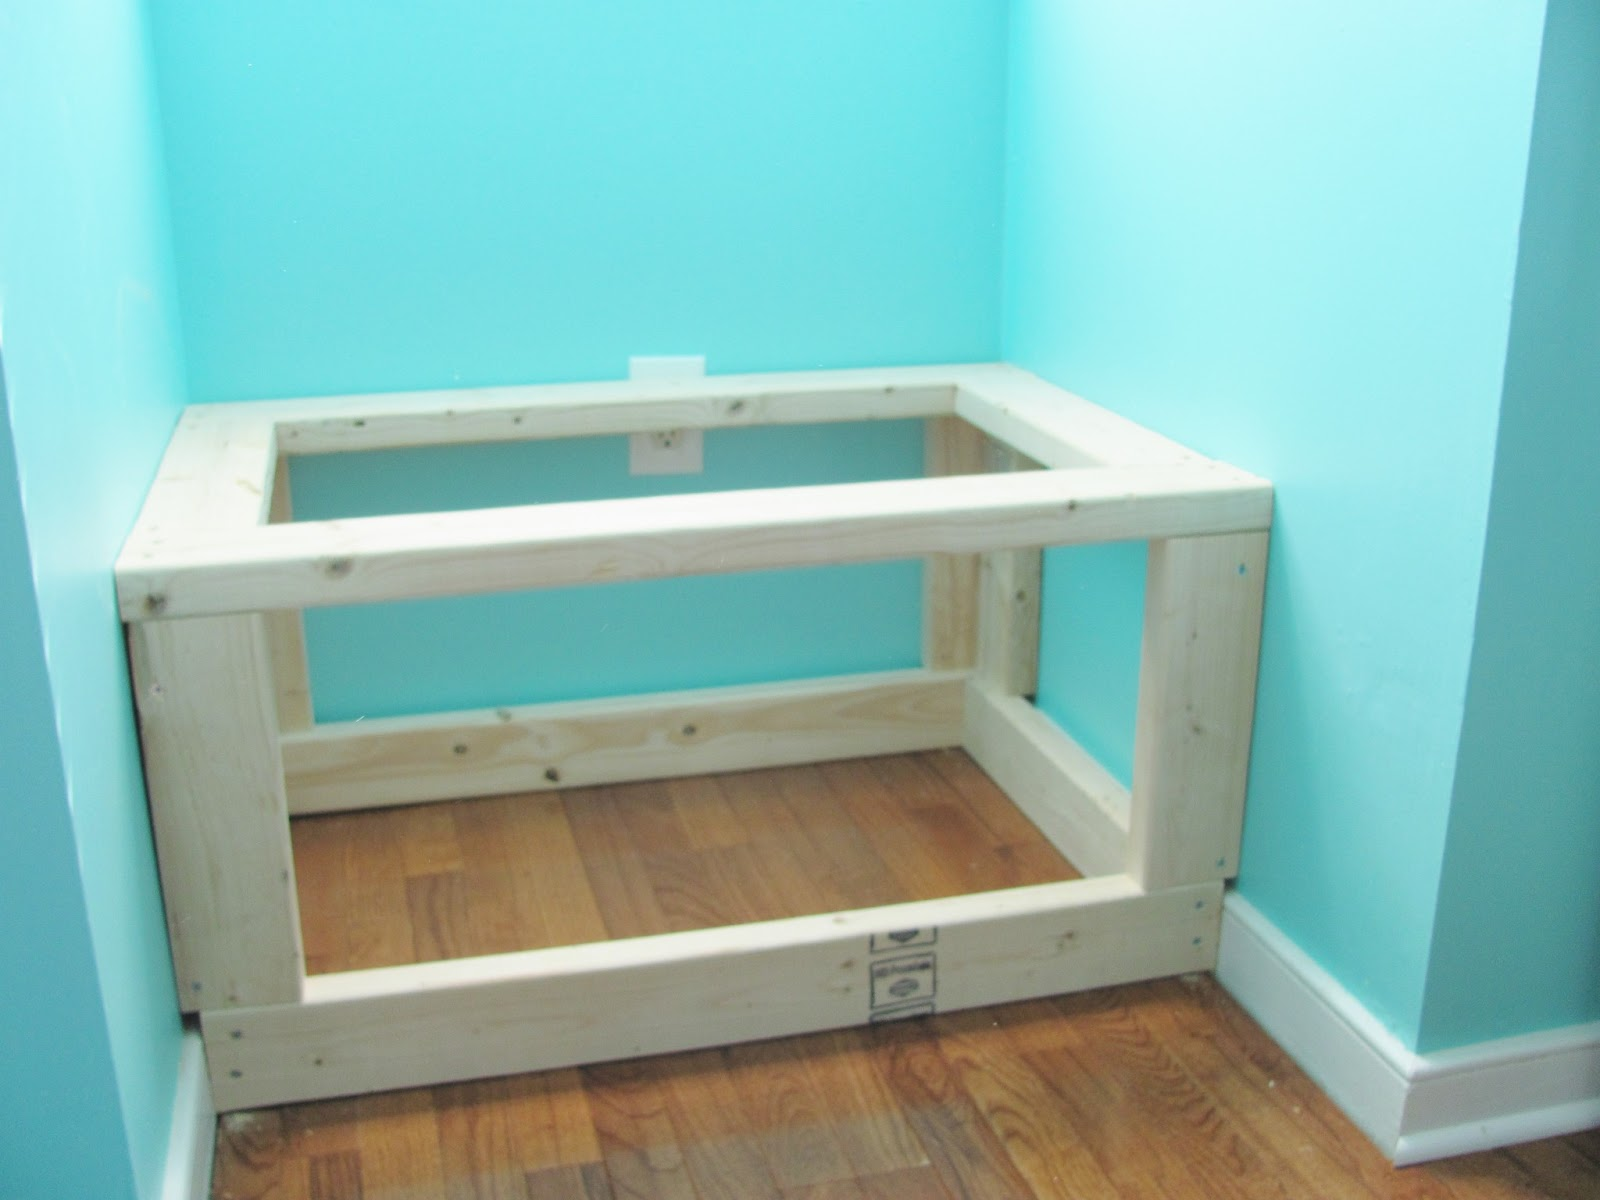 How To Build A Simple Window Seat With Storage